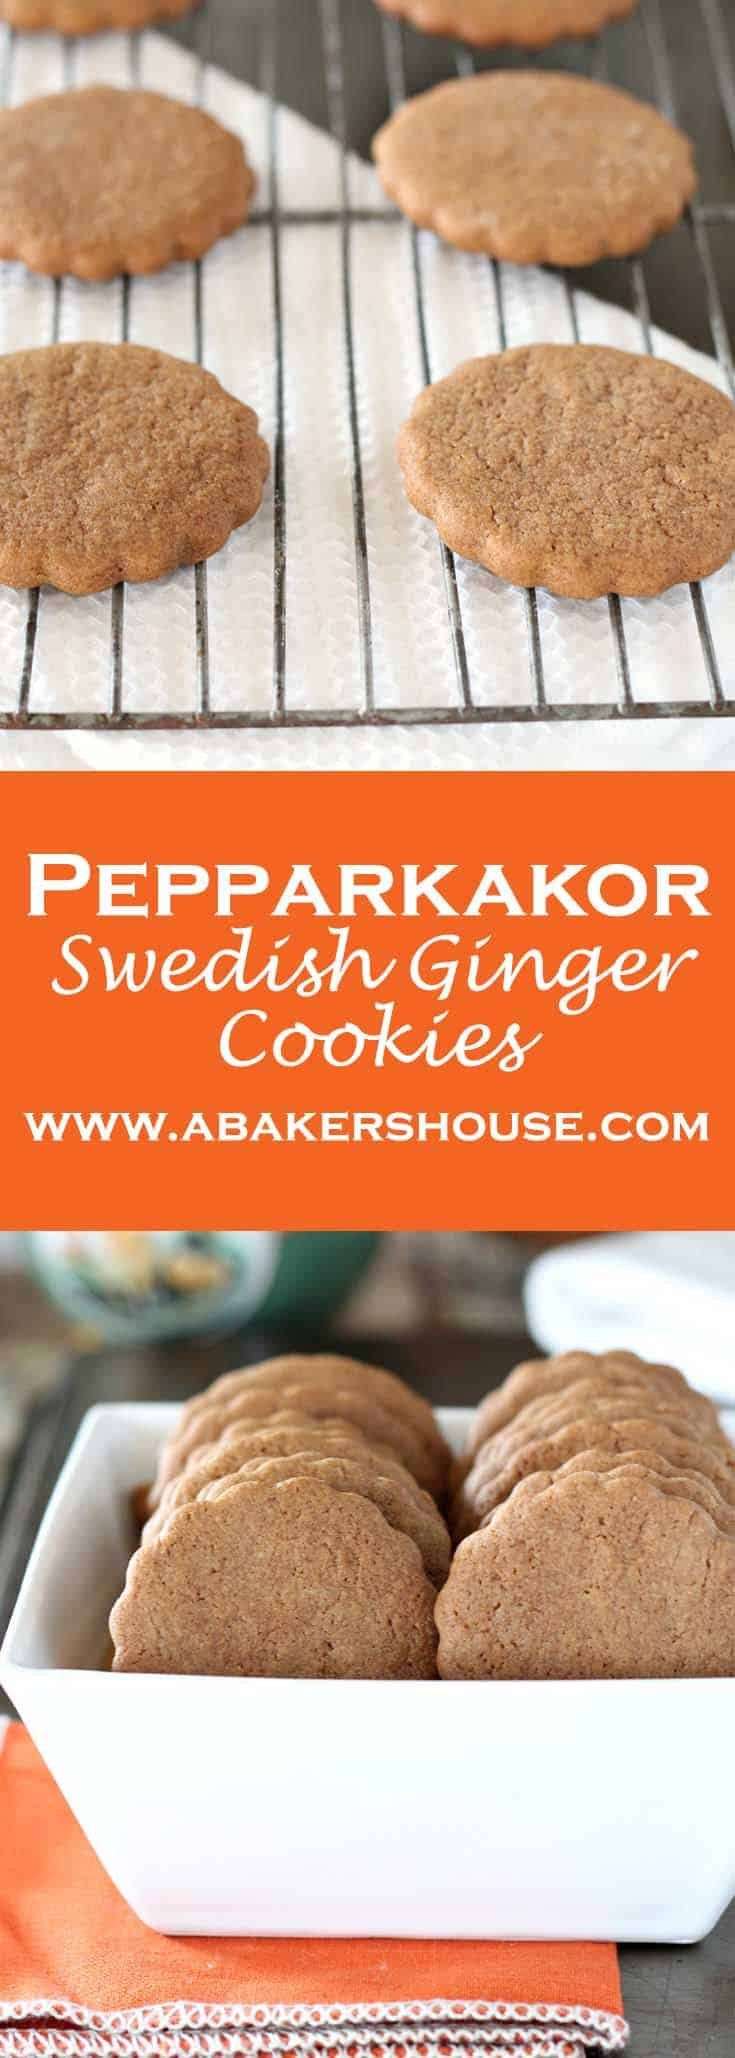 This Swedish ginger cookie is called Pepparkakor. It is perfect ginger snap cookie for a holiday Christmas cookie. These Swedish Ginger Cookies are delightfully easy. You might have come across this cookie in the children's book, Pippi Longstocking. #gingersnap #pepparkakor #pippi #abakershouse #holidaybaking